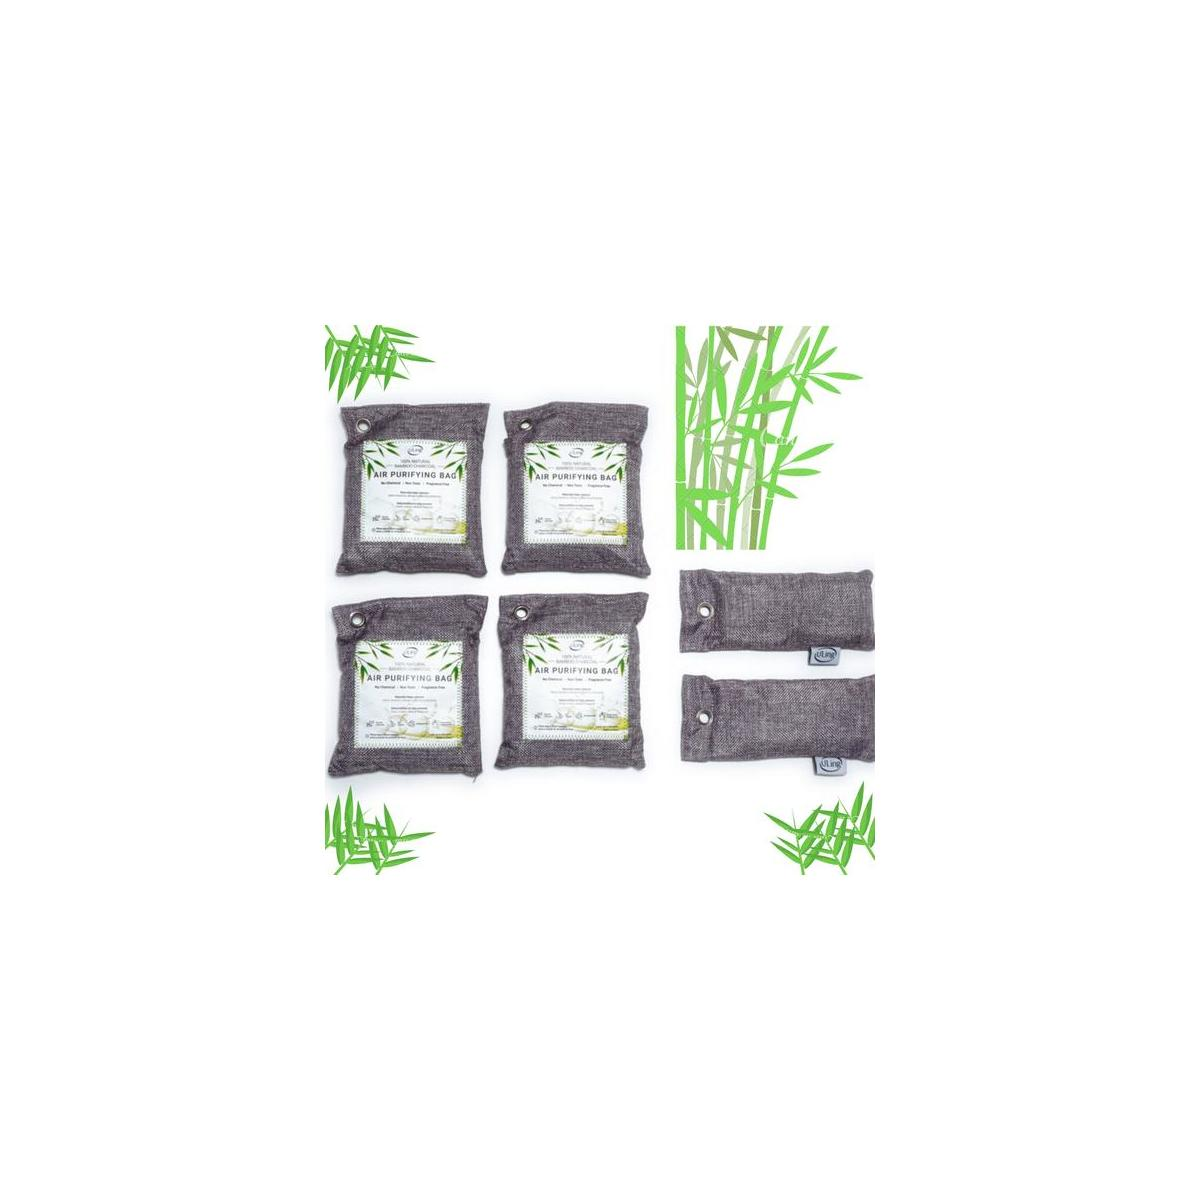 Charcoal Air Purifying Bags 6 pack - All natural use for your home, car, shoes, pet area